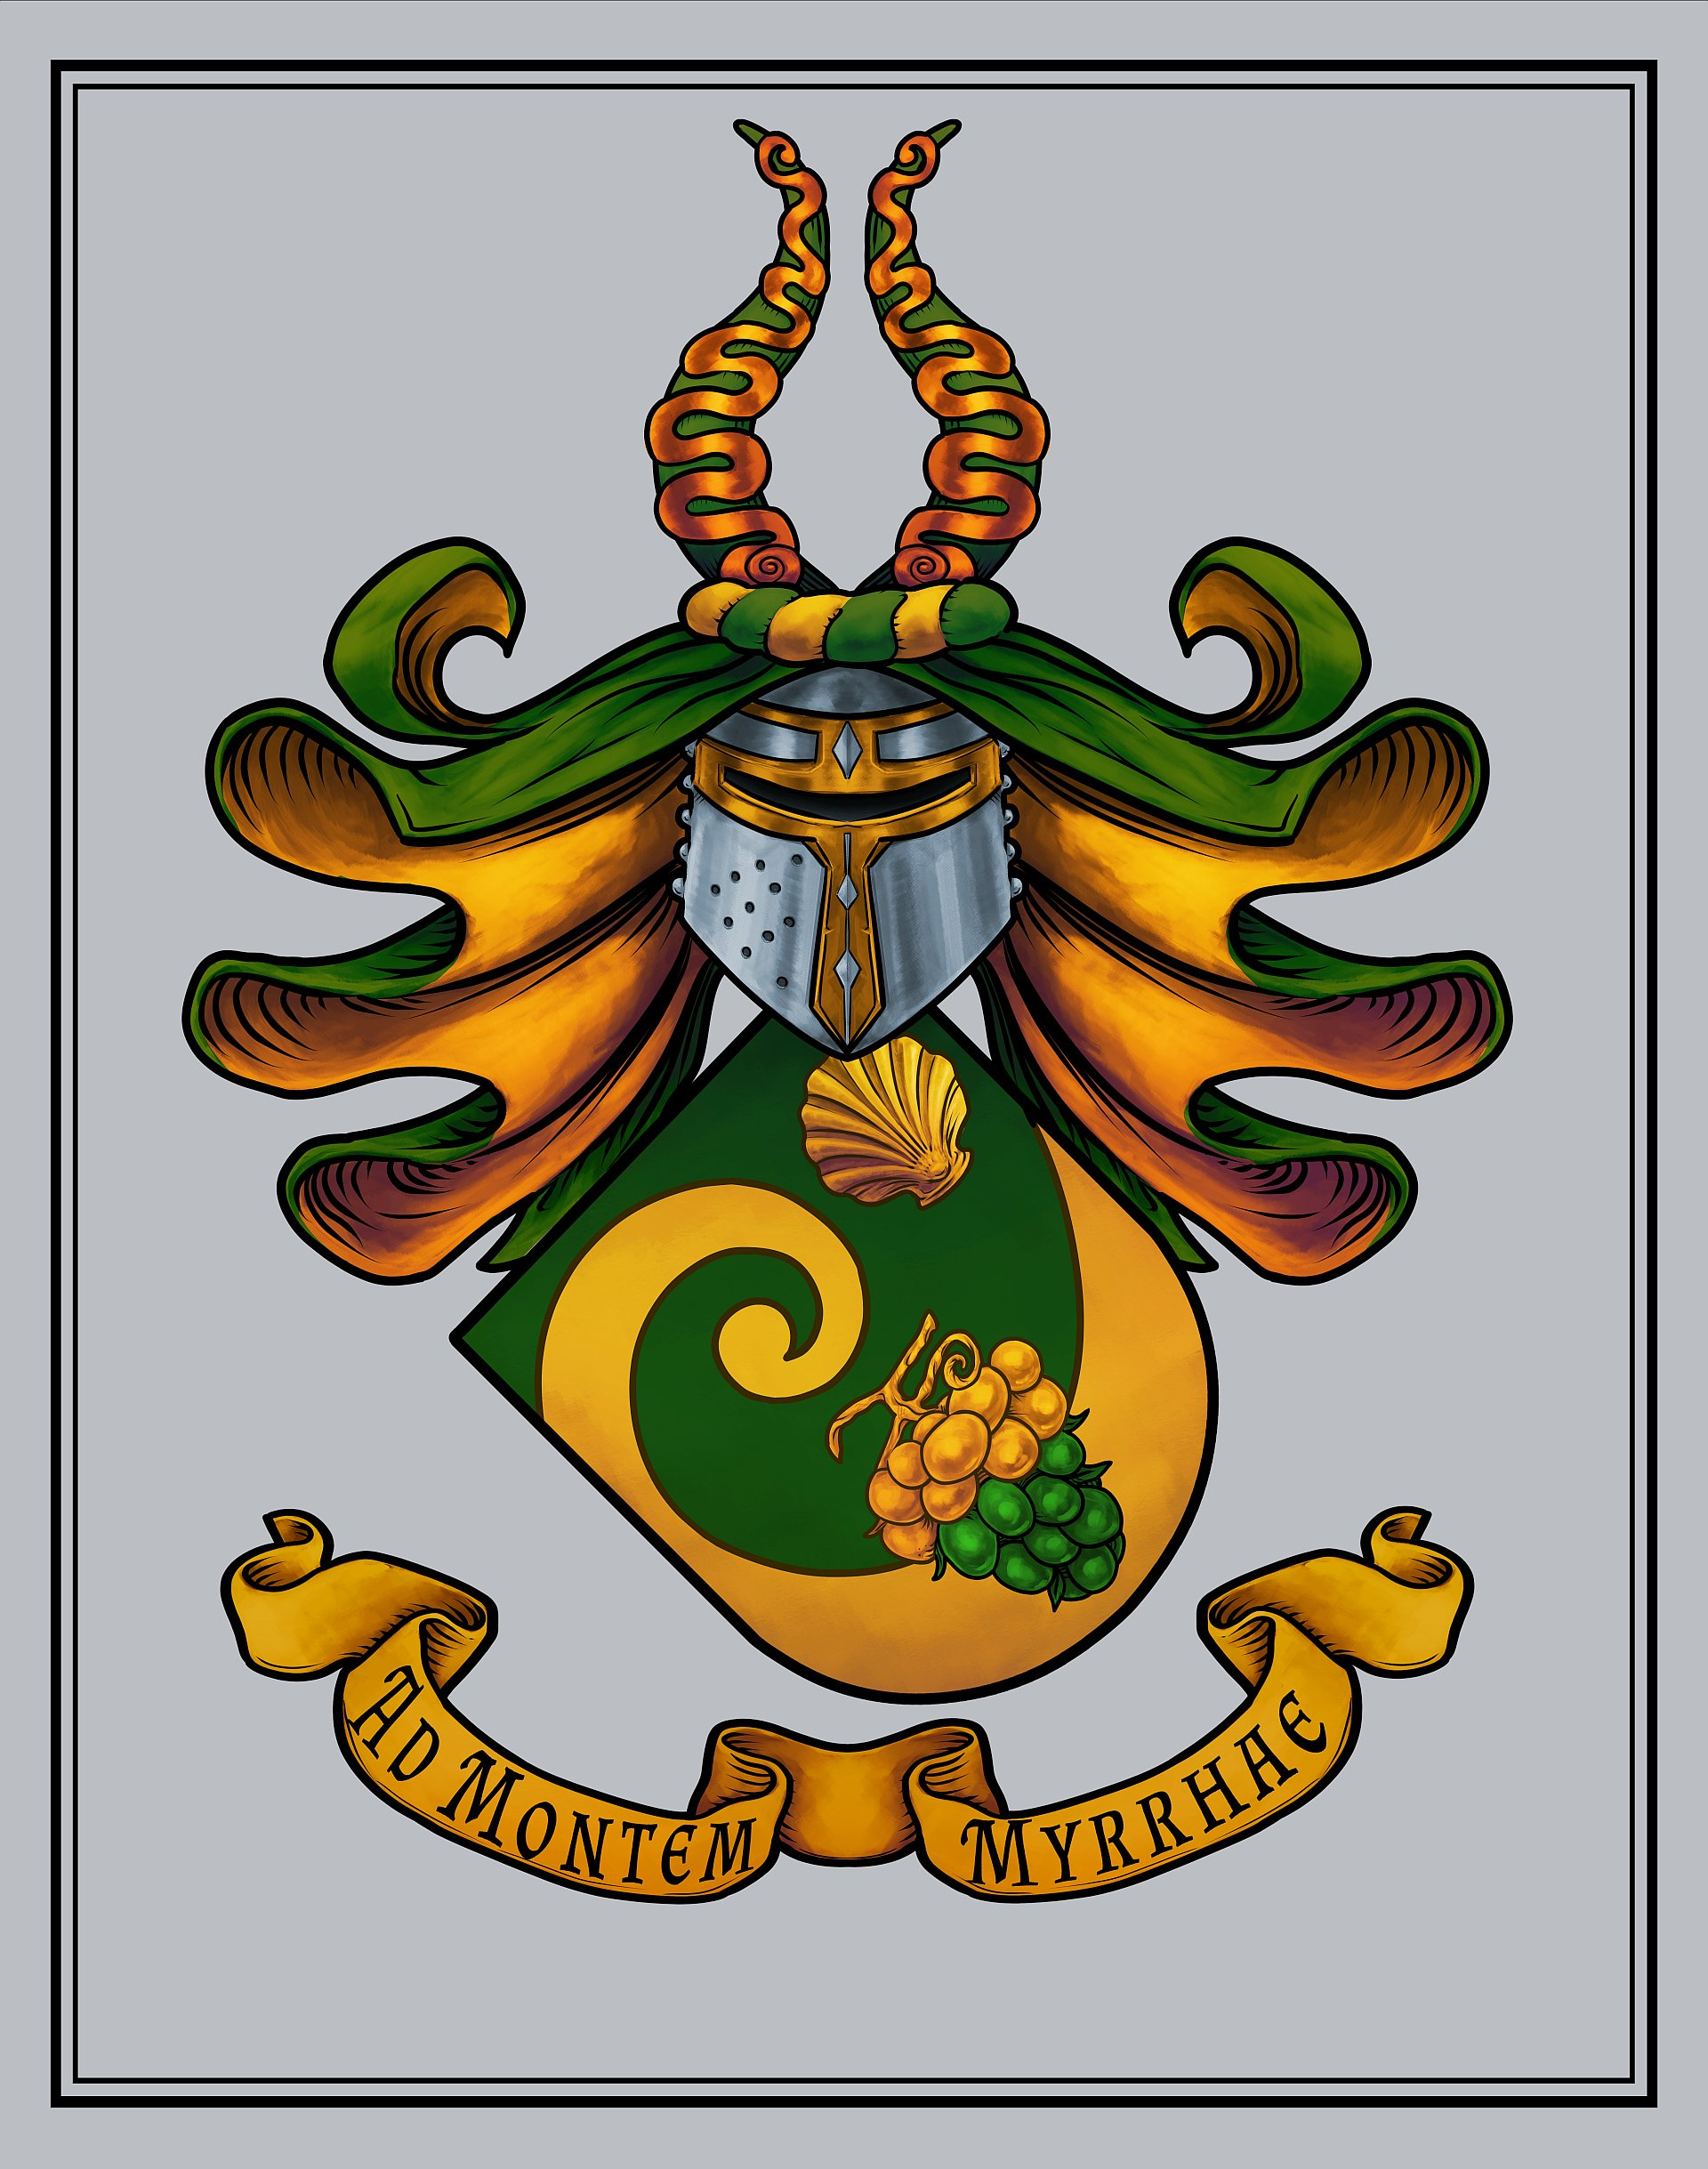 Kalter Coat of Arms by Nick Truvor